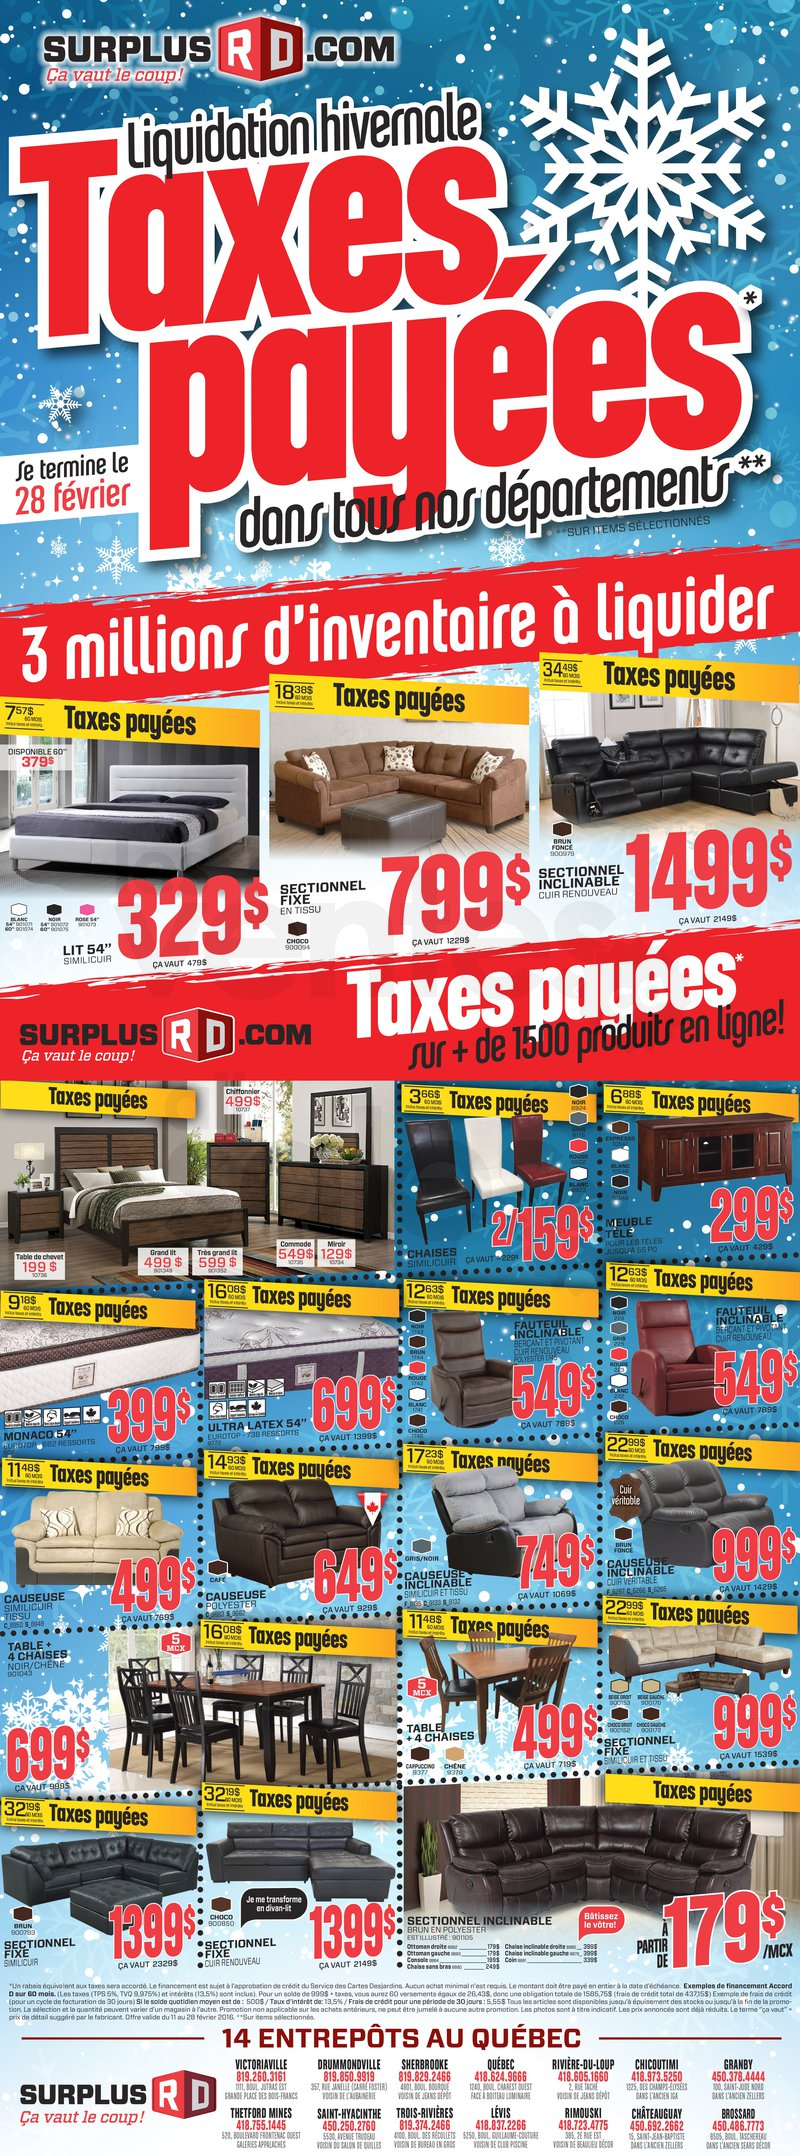 Liquidation de meubles taxes pay es for Entrepot de liquidation